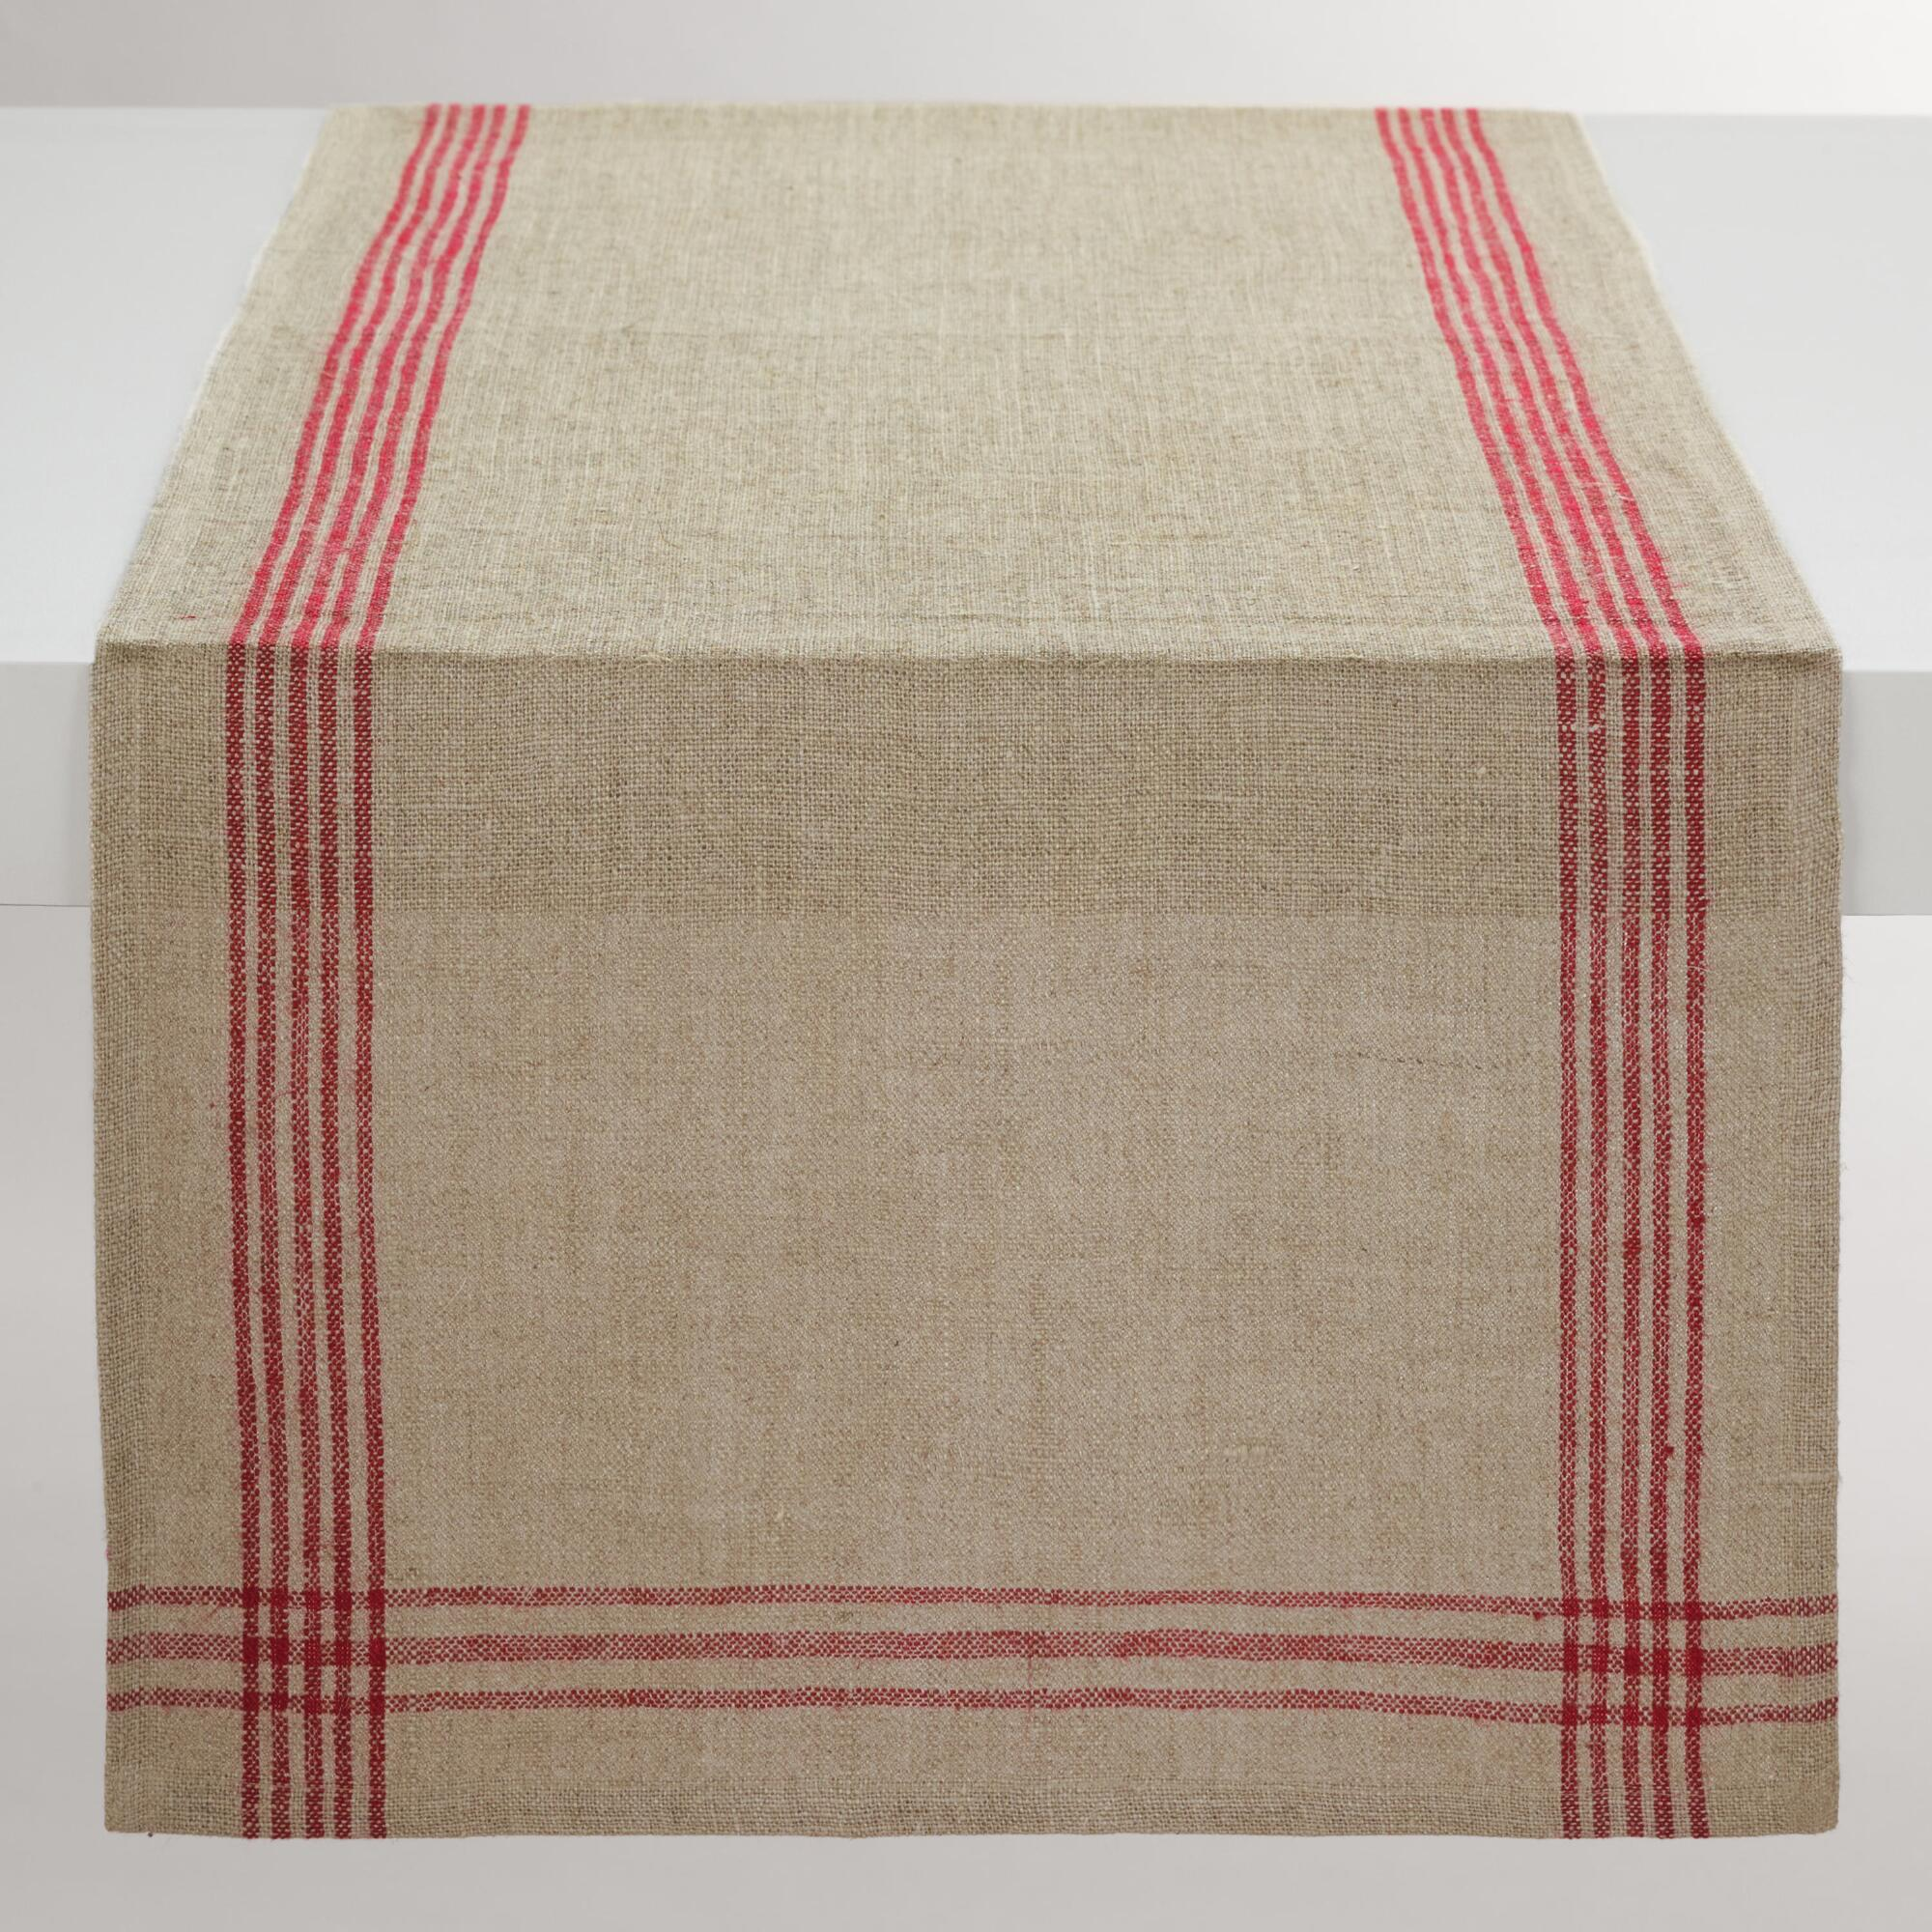 Red Stripe Linen Table Runner: Red/Natural - Natural Fiber by World Market